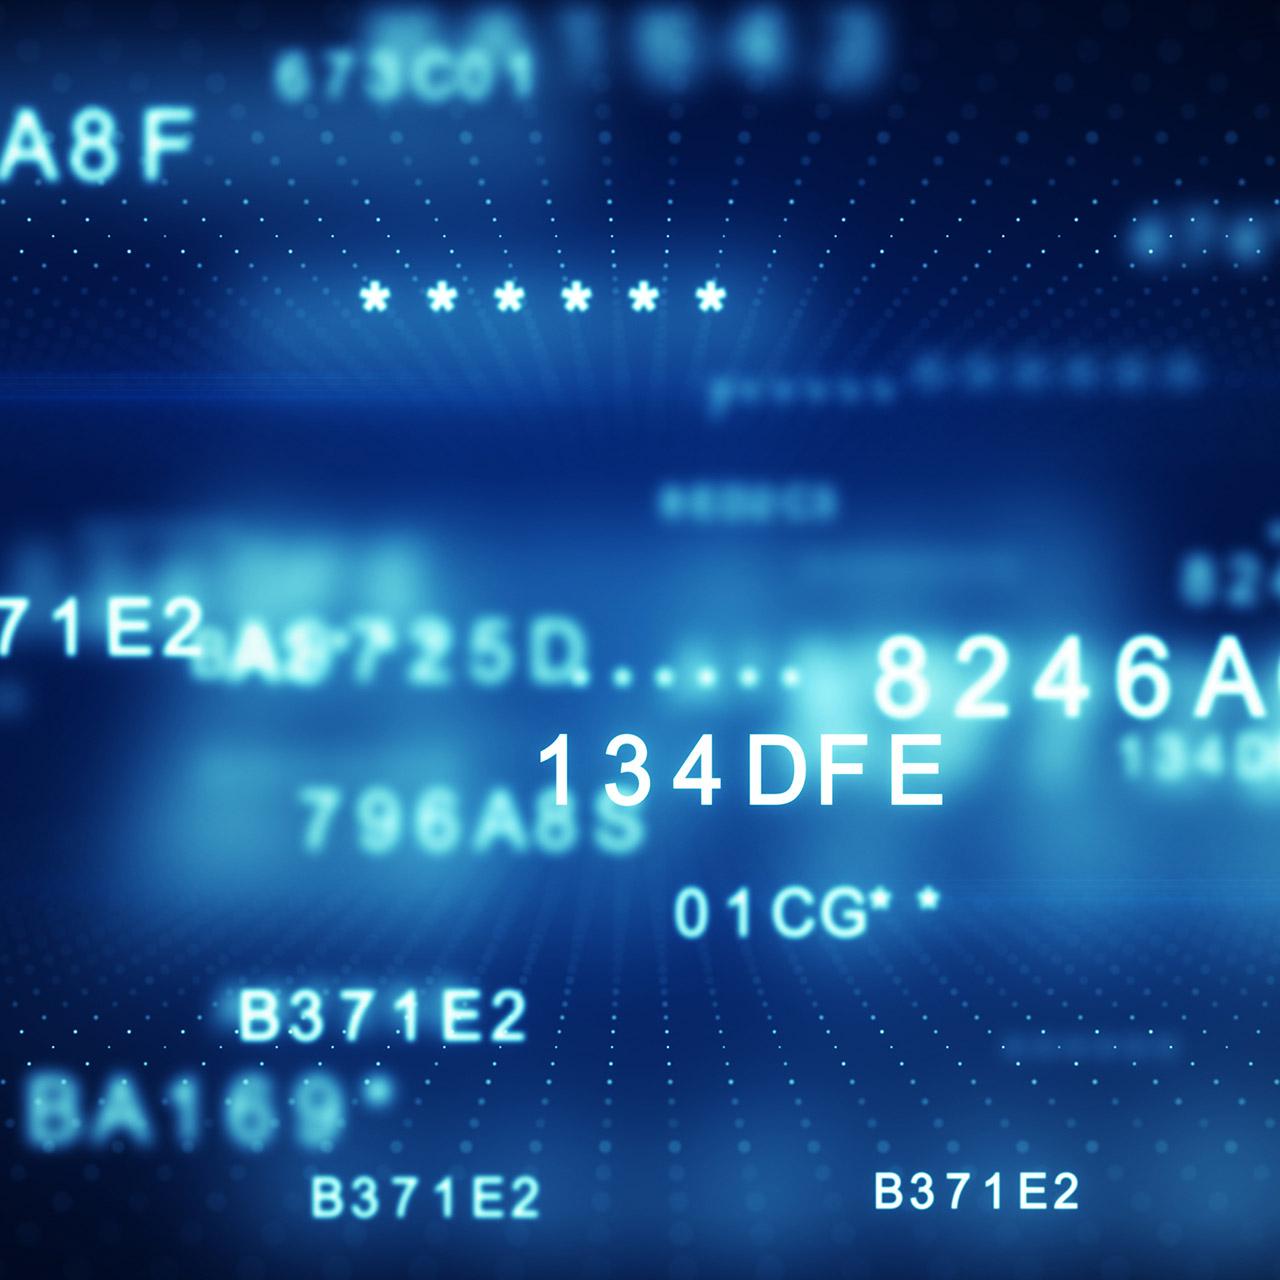 Decryption of blue digital data code